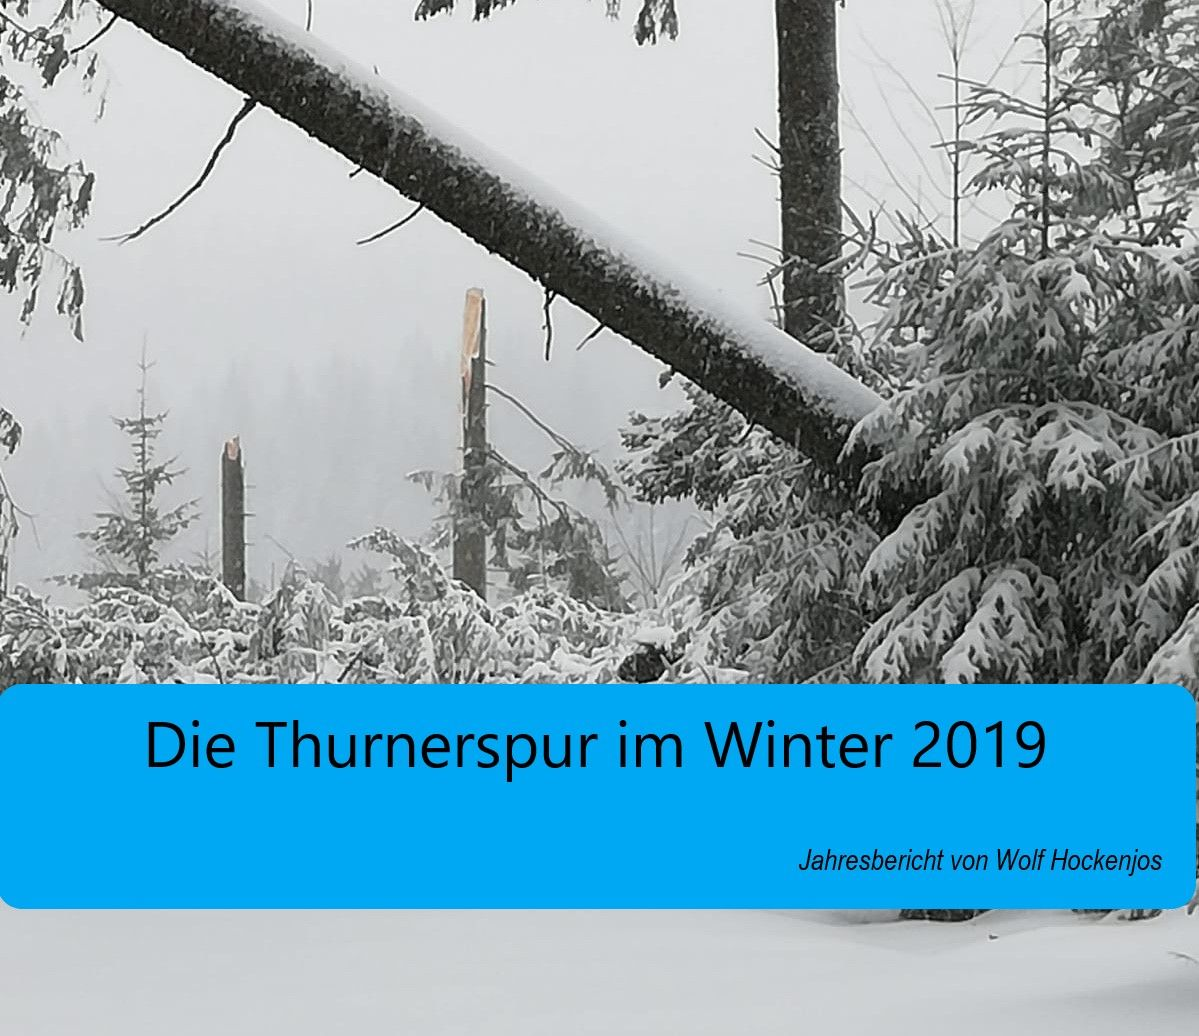 Die Thurnerspur im Winter 2019